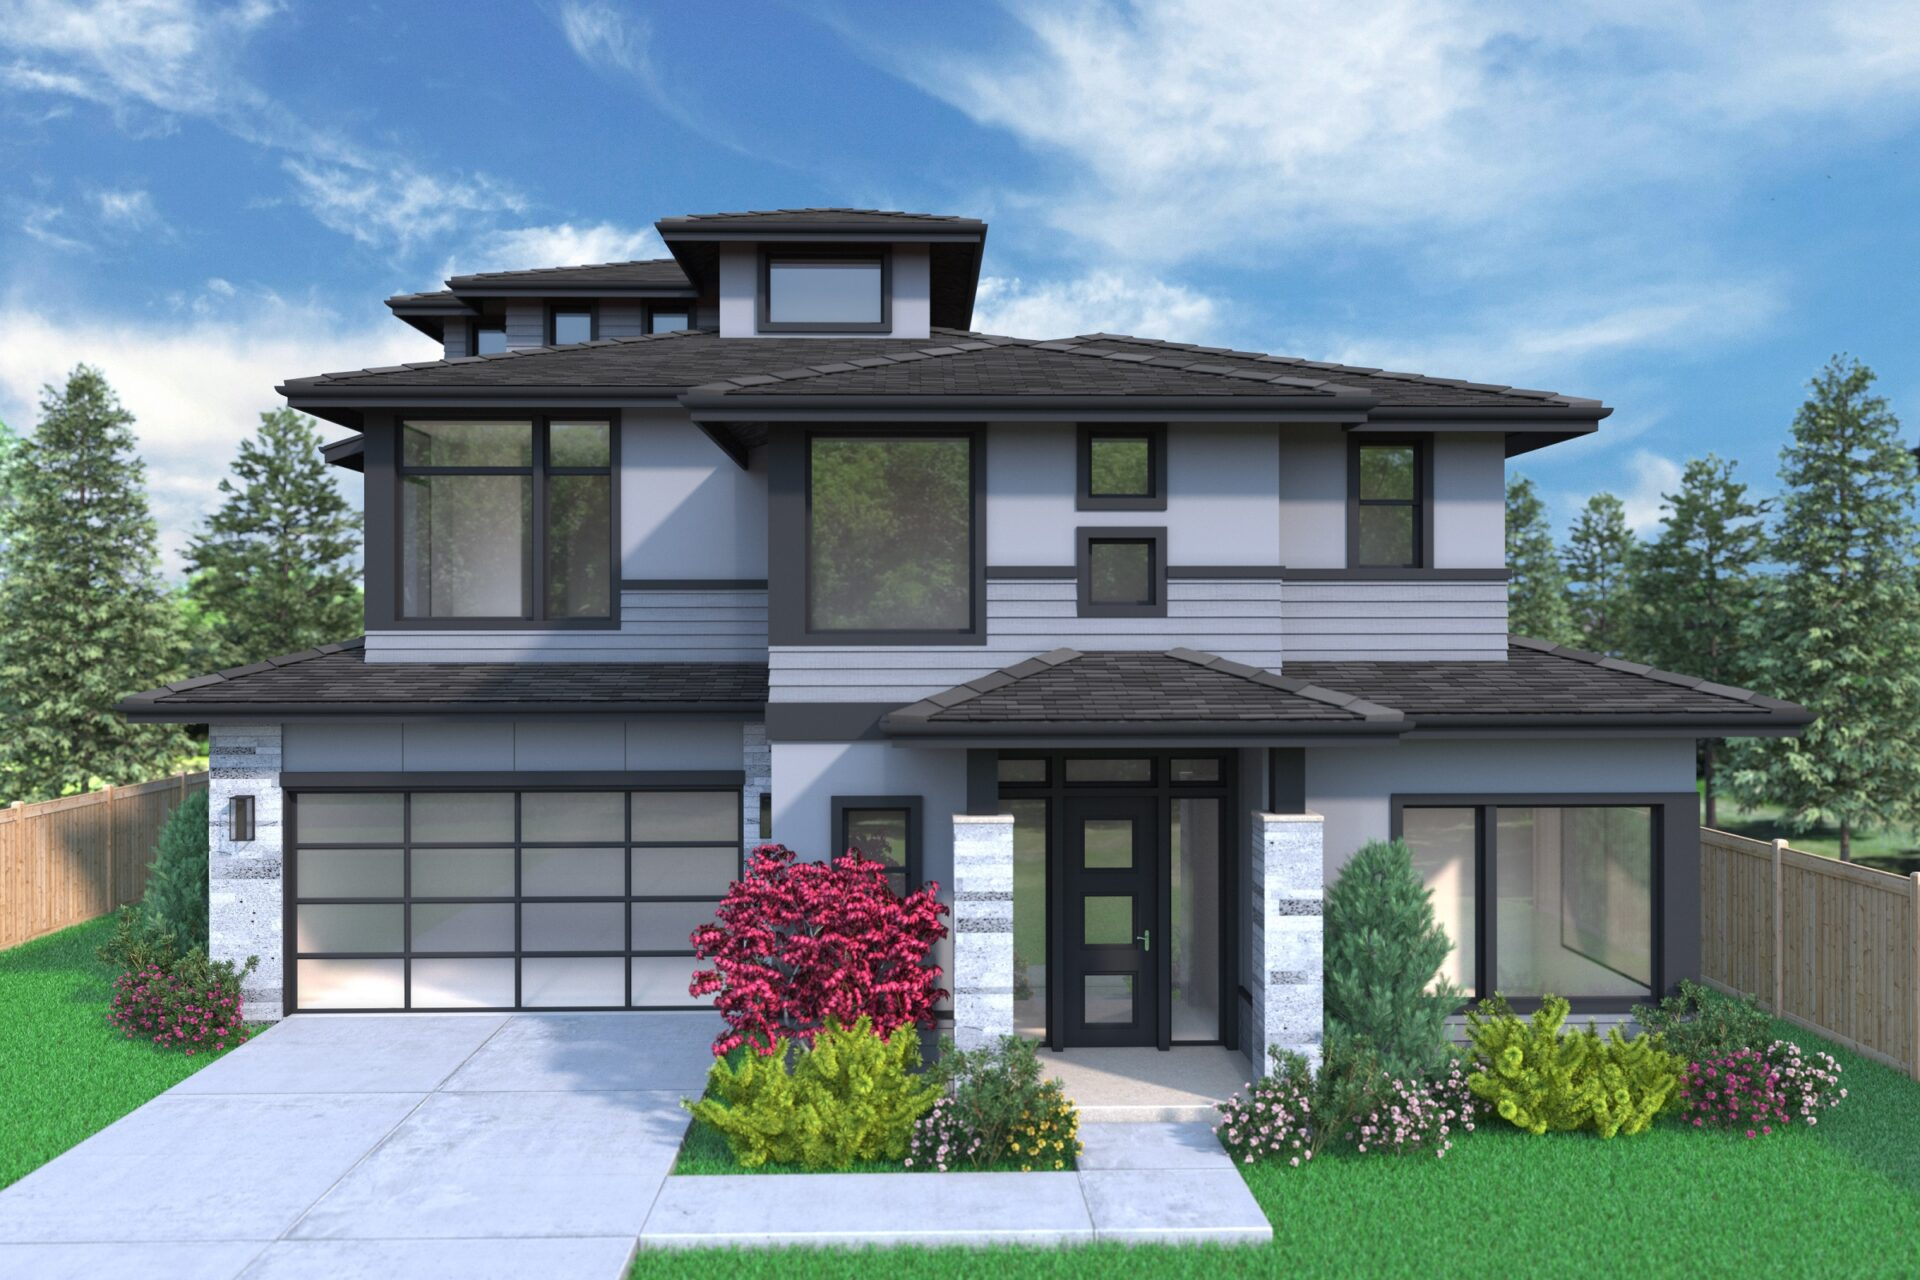 View our new luxury home construction on 1630 166th Ave NE in Bellevue, WA from MN Custom Homes